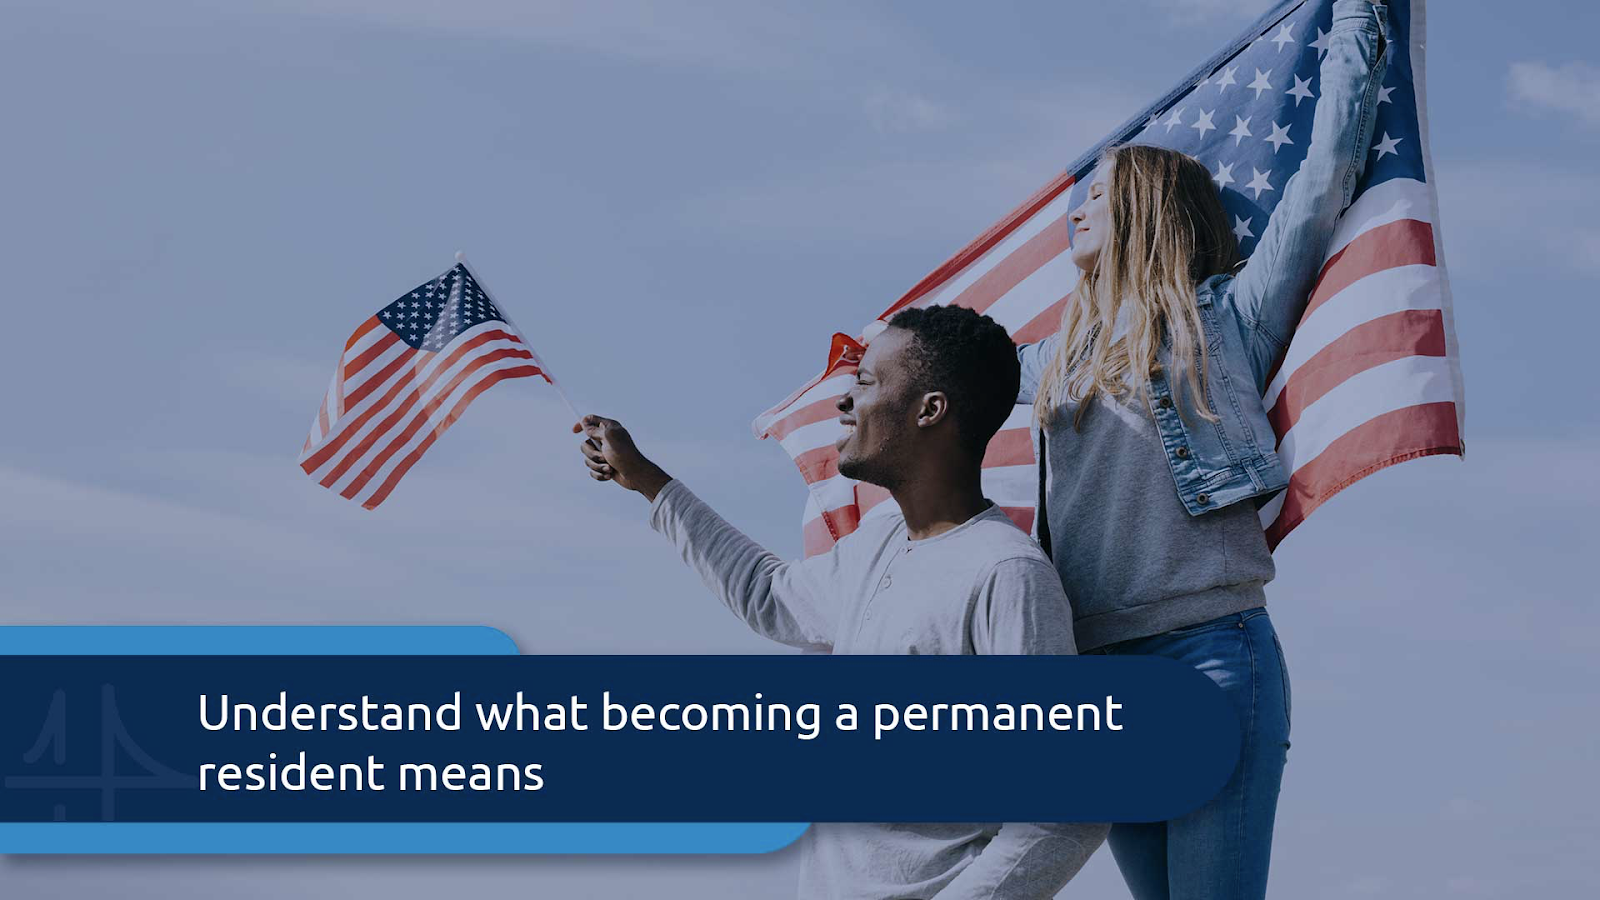 Your rights and obligations as a legal permanent resident in the US